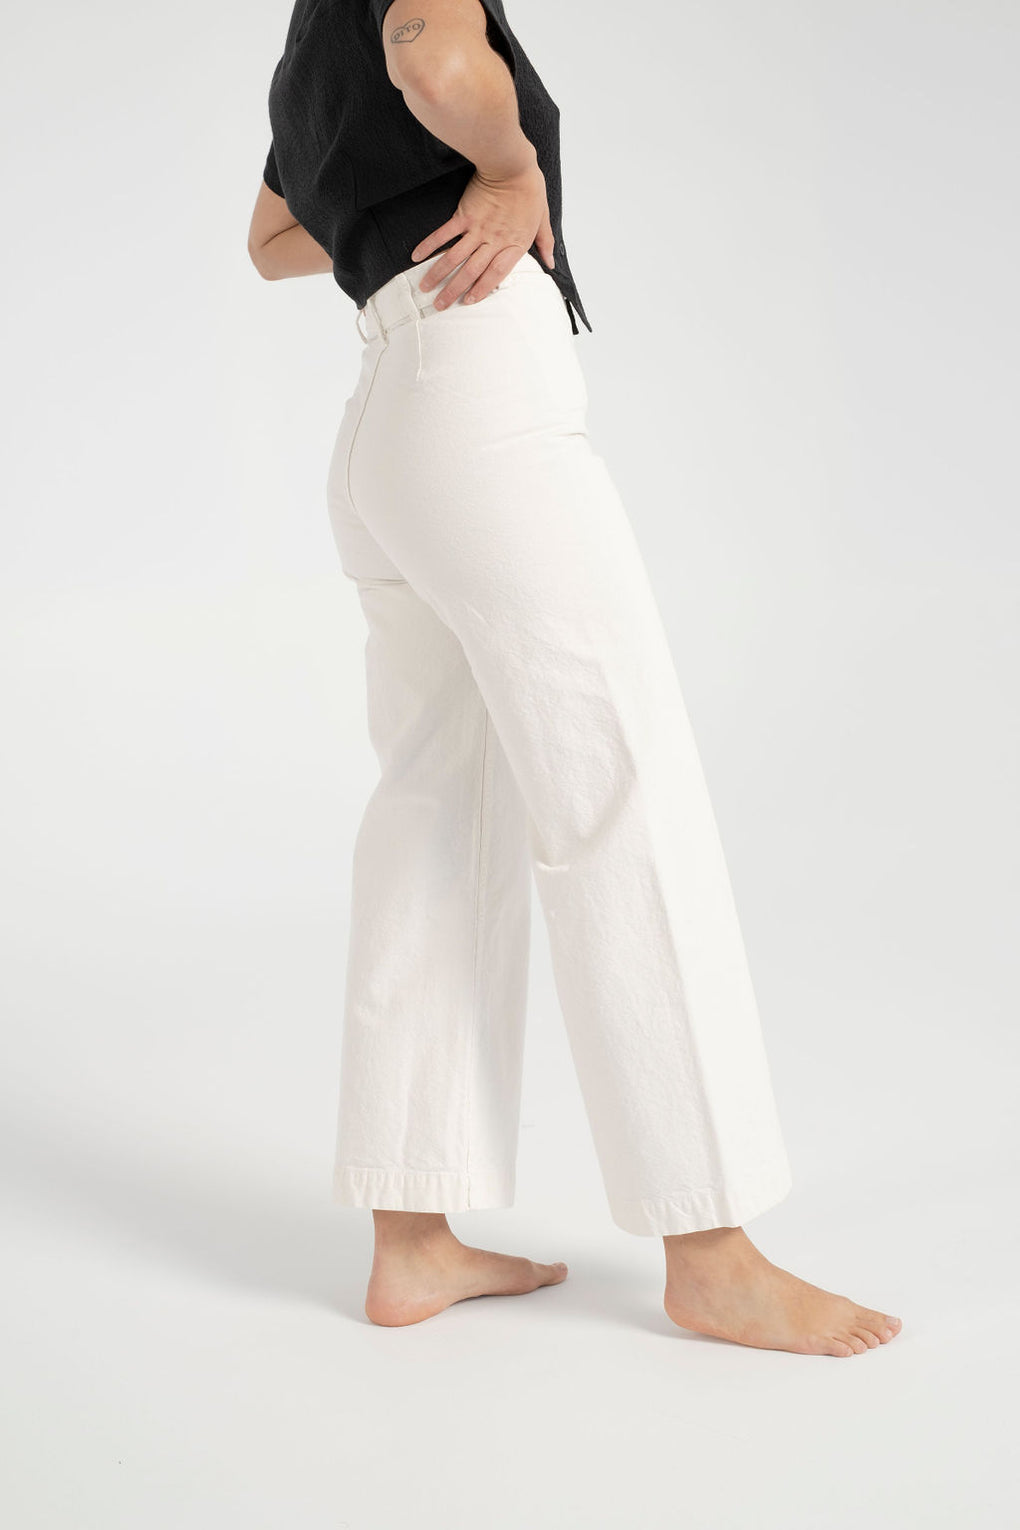 Jesse Kamm-Jesse Kamm sailor pants-Kamm pants-Kamm sailor pants-Salt white sailor pants-white jeans-white sailor pants-Idun-St. Paul